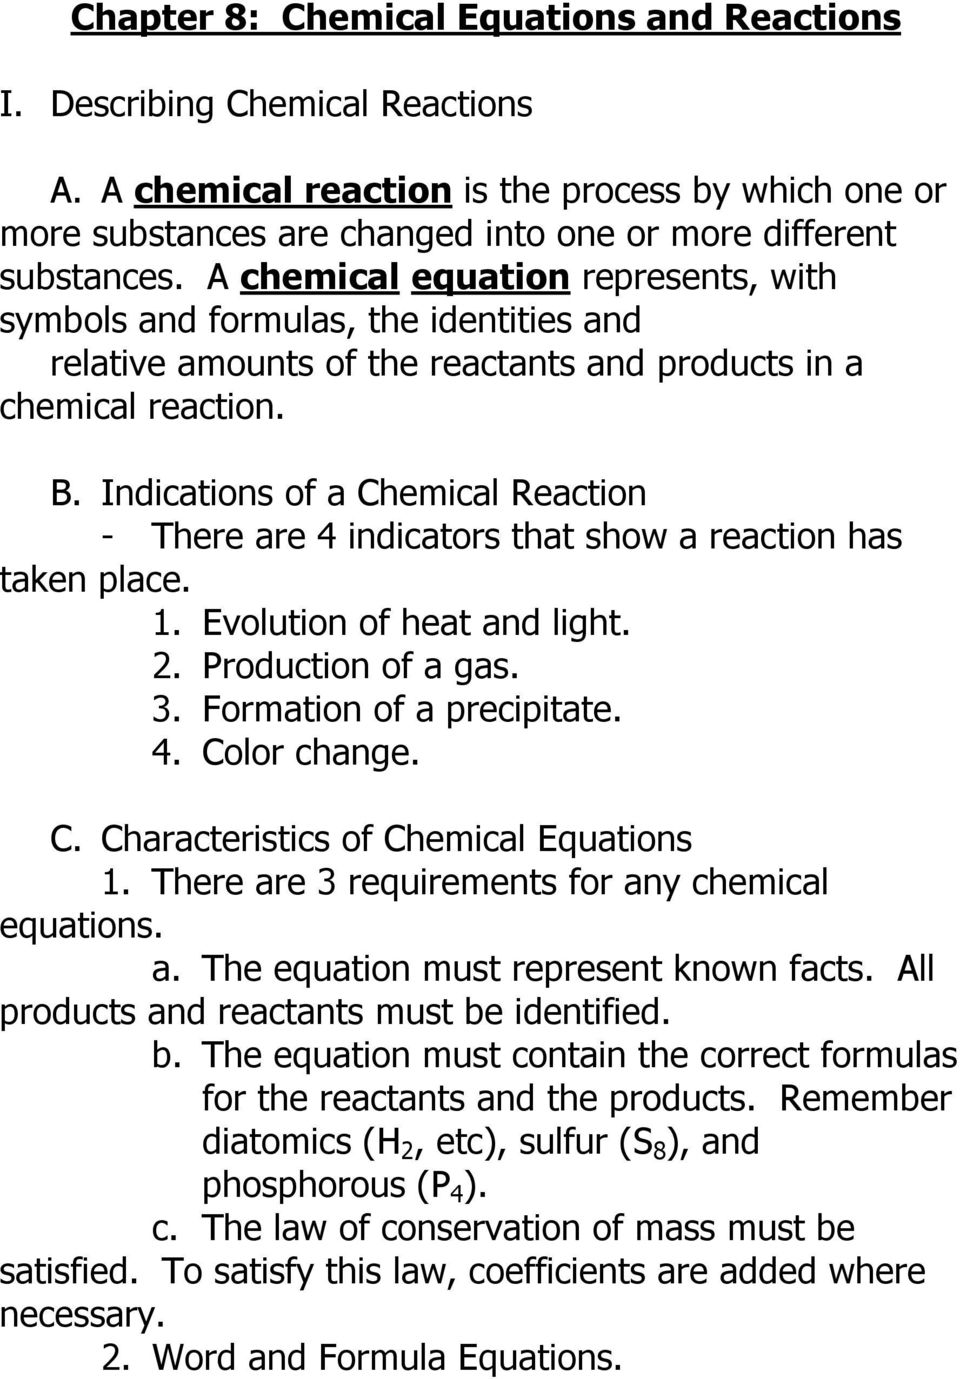 Chapter 8 Chemical Equations And Reactions Pdf